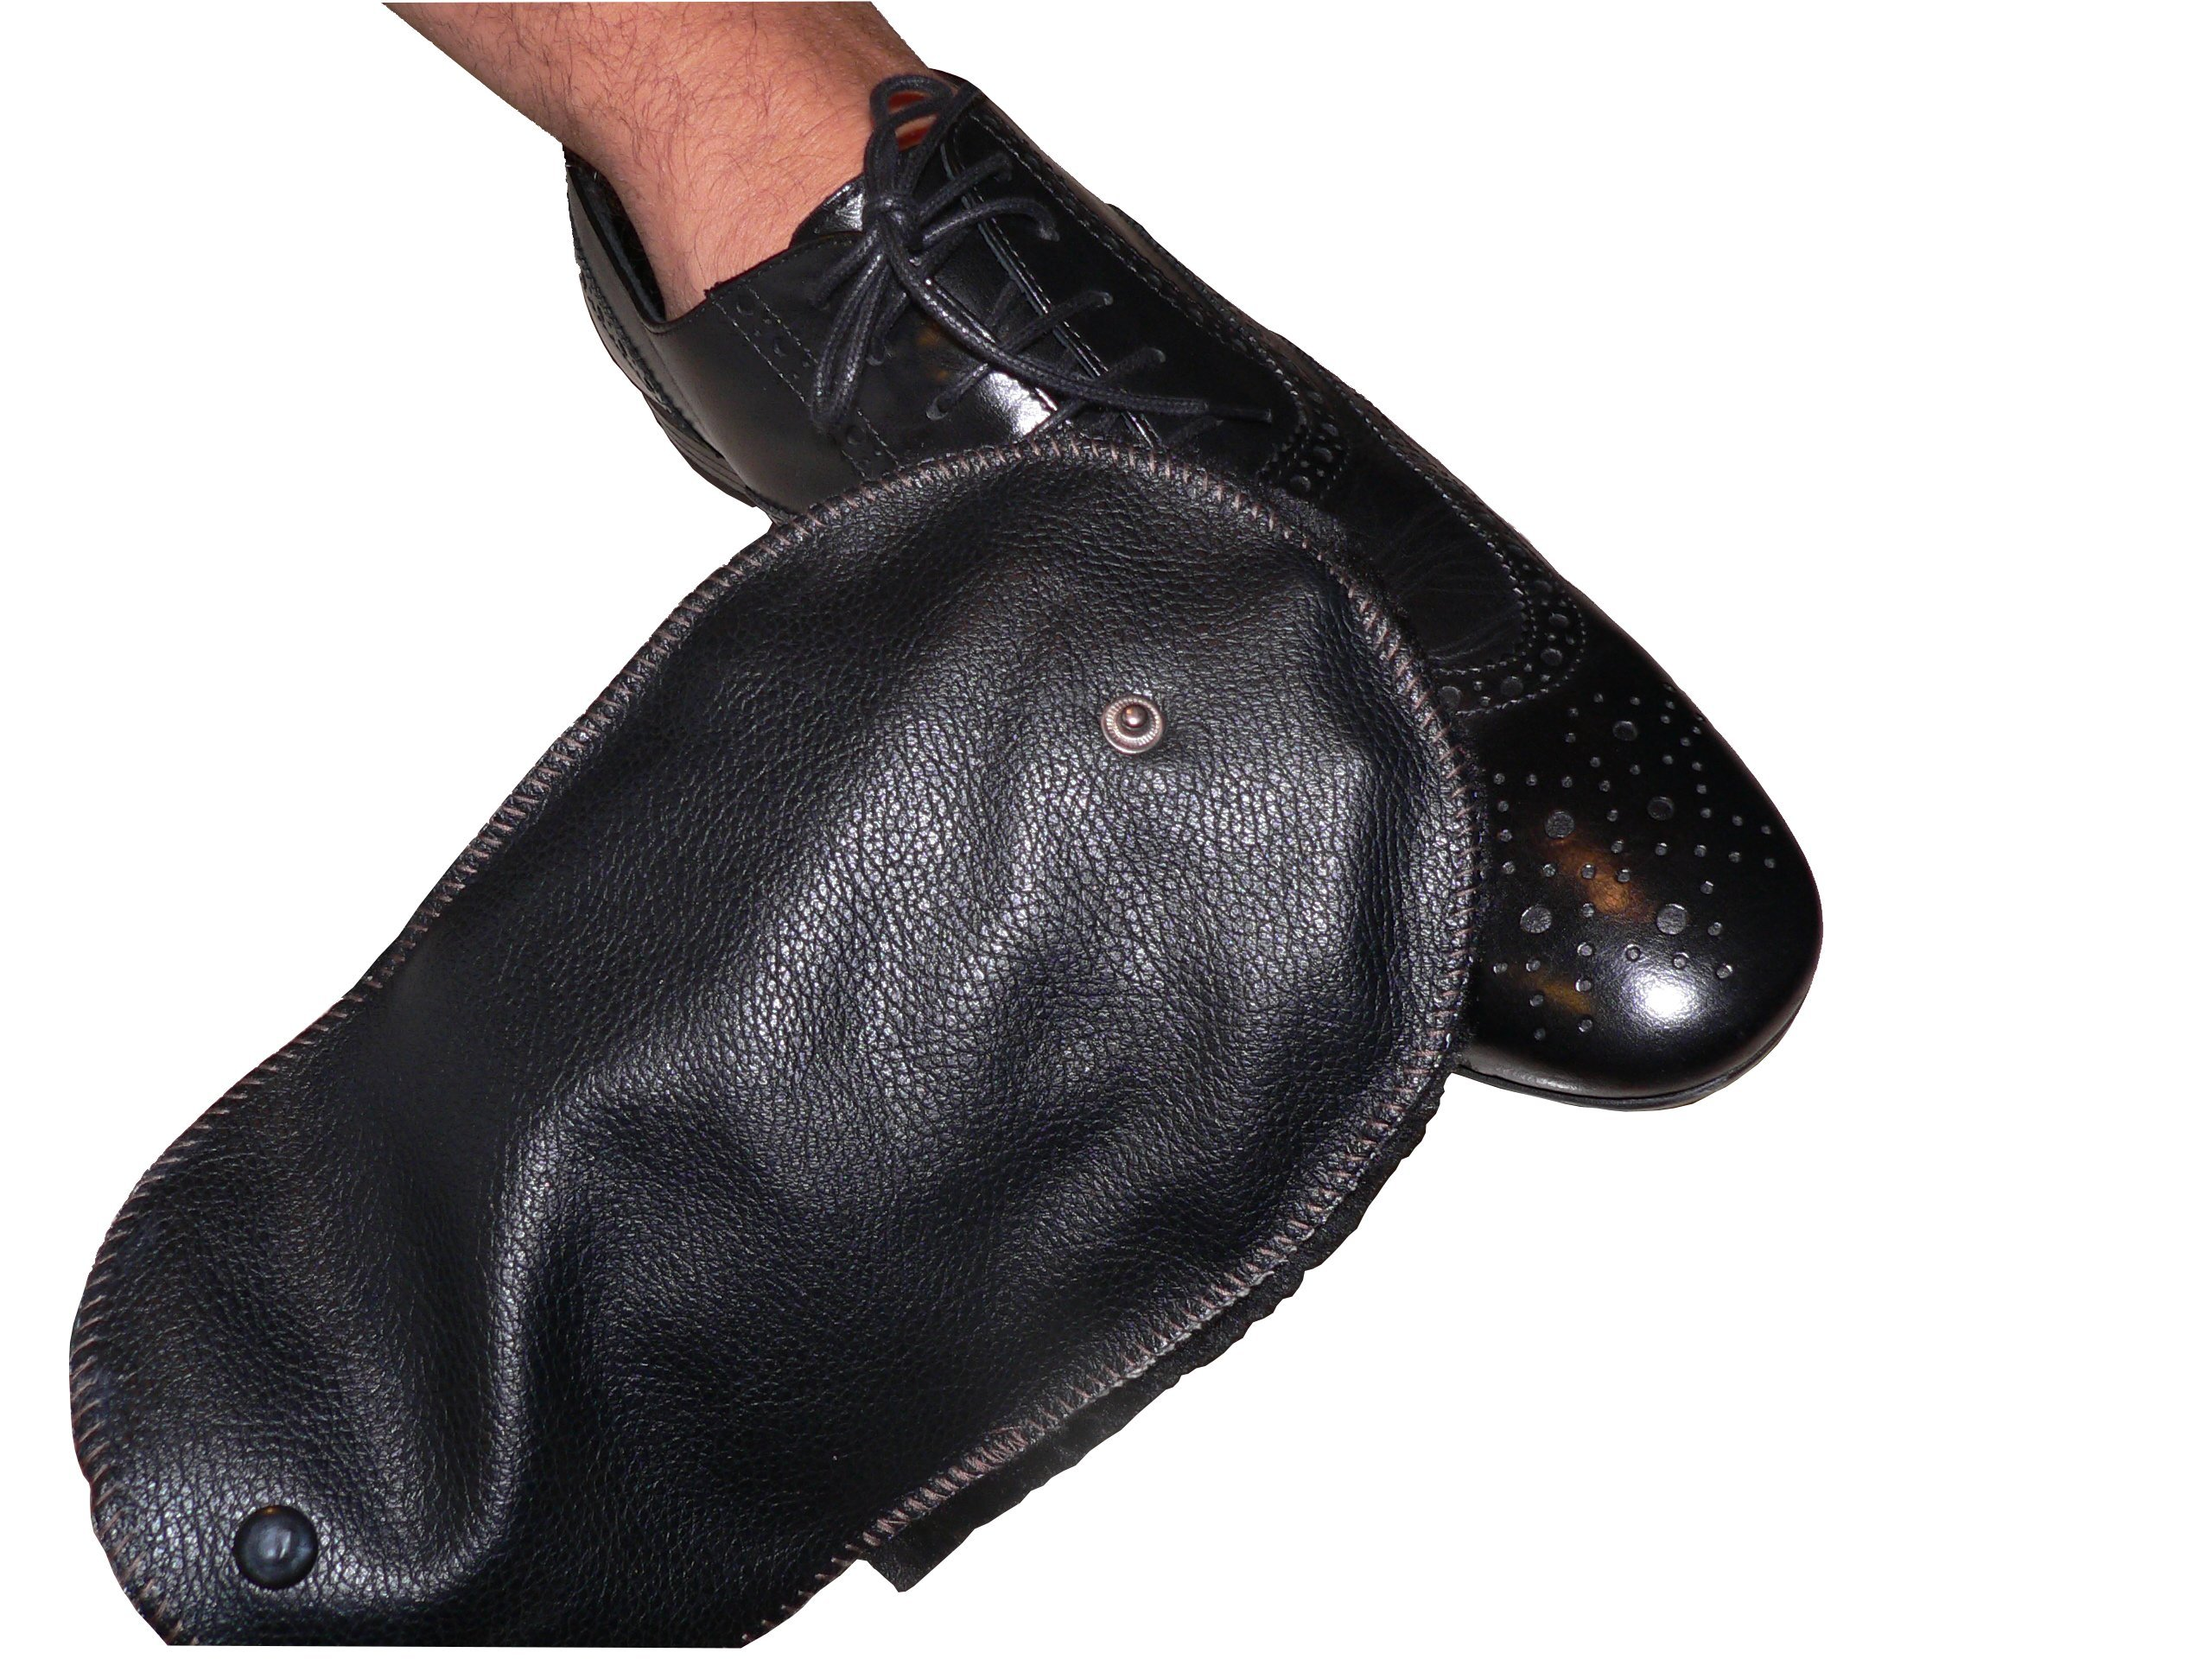 Shining, Buffing and Cleaning Glove for all Leather Products